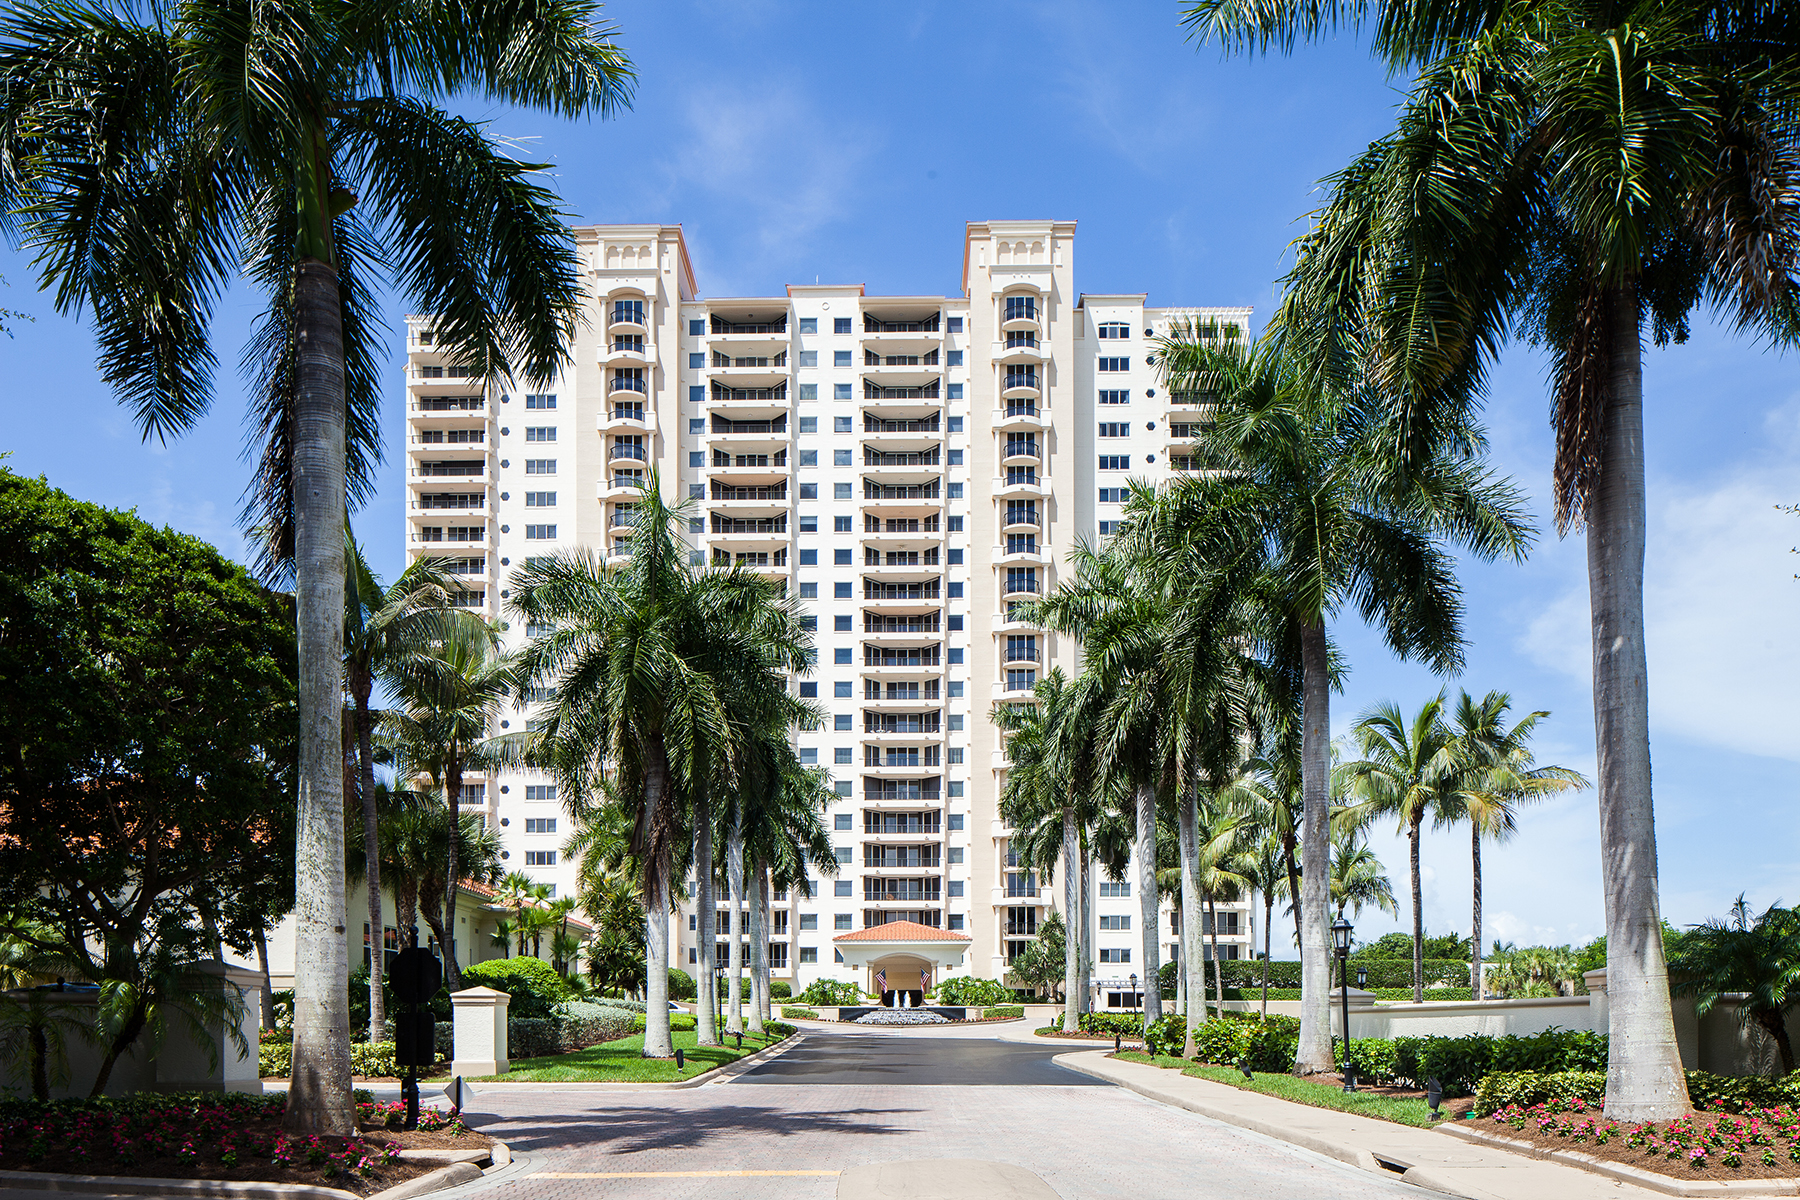 Condominium for Sale at PELICAN BAY - MARBELLA 7425 Pelican Bay Blvd 1703 Naples, Florida, 34108 United States